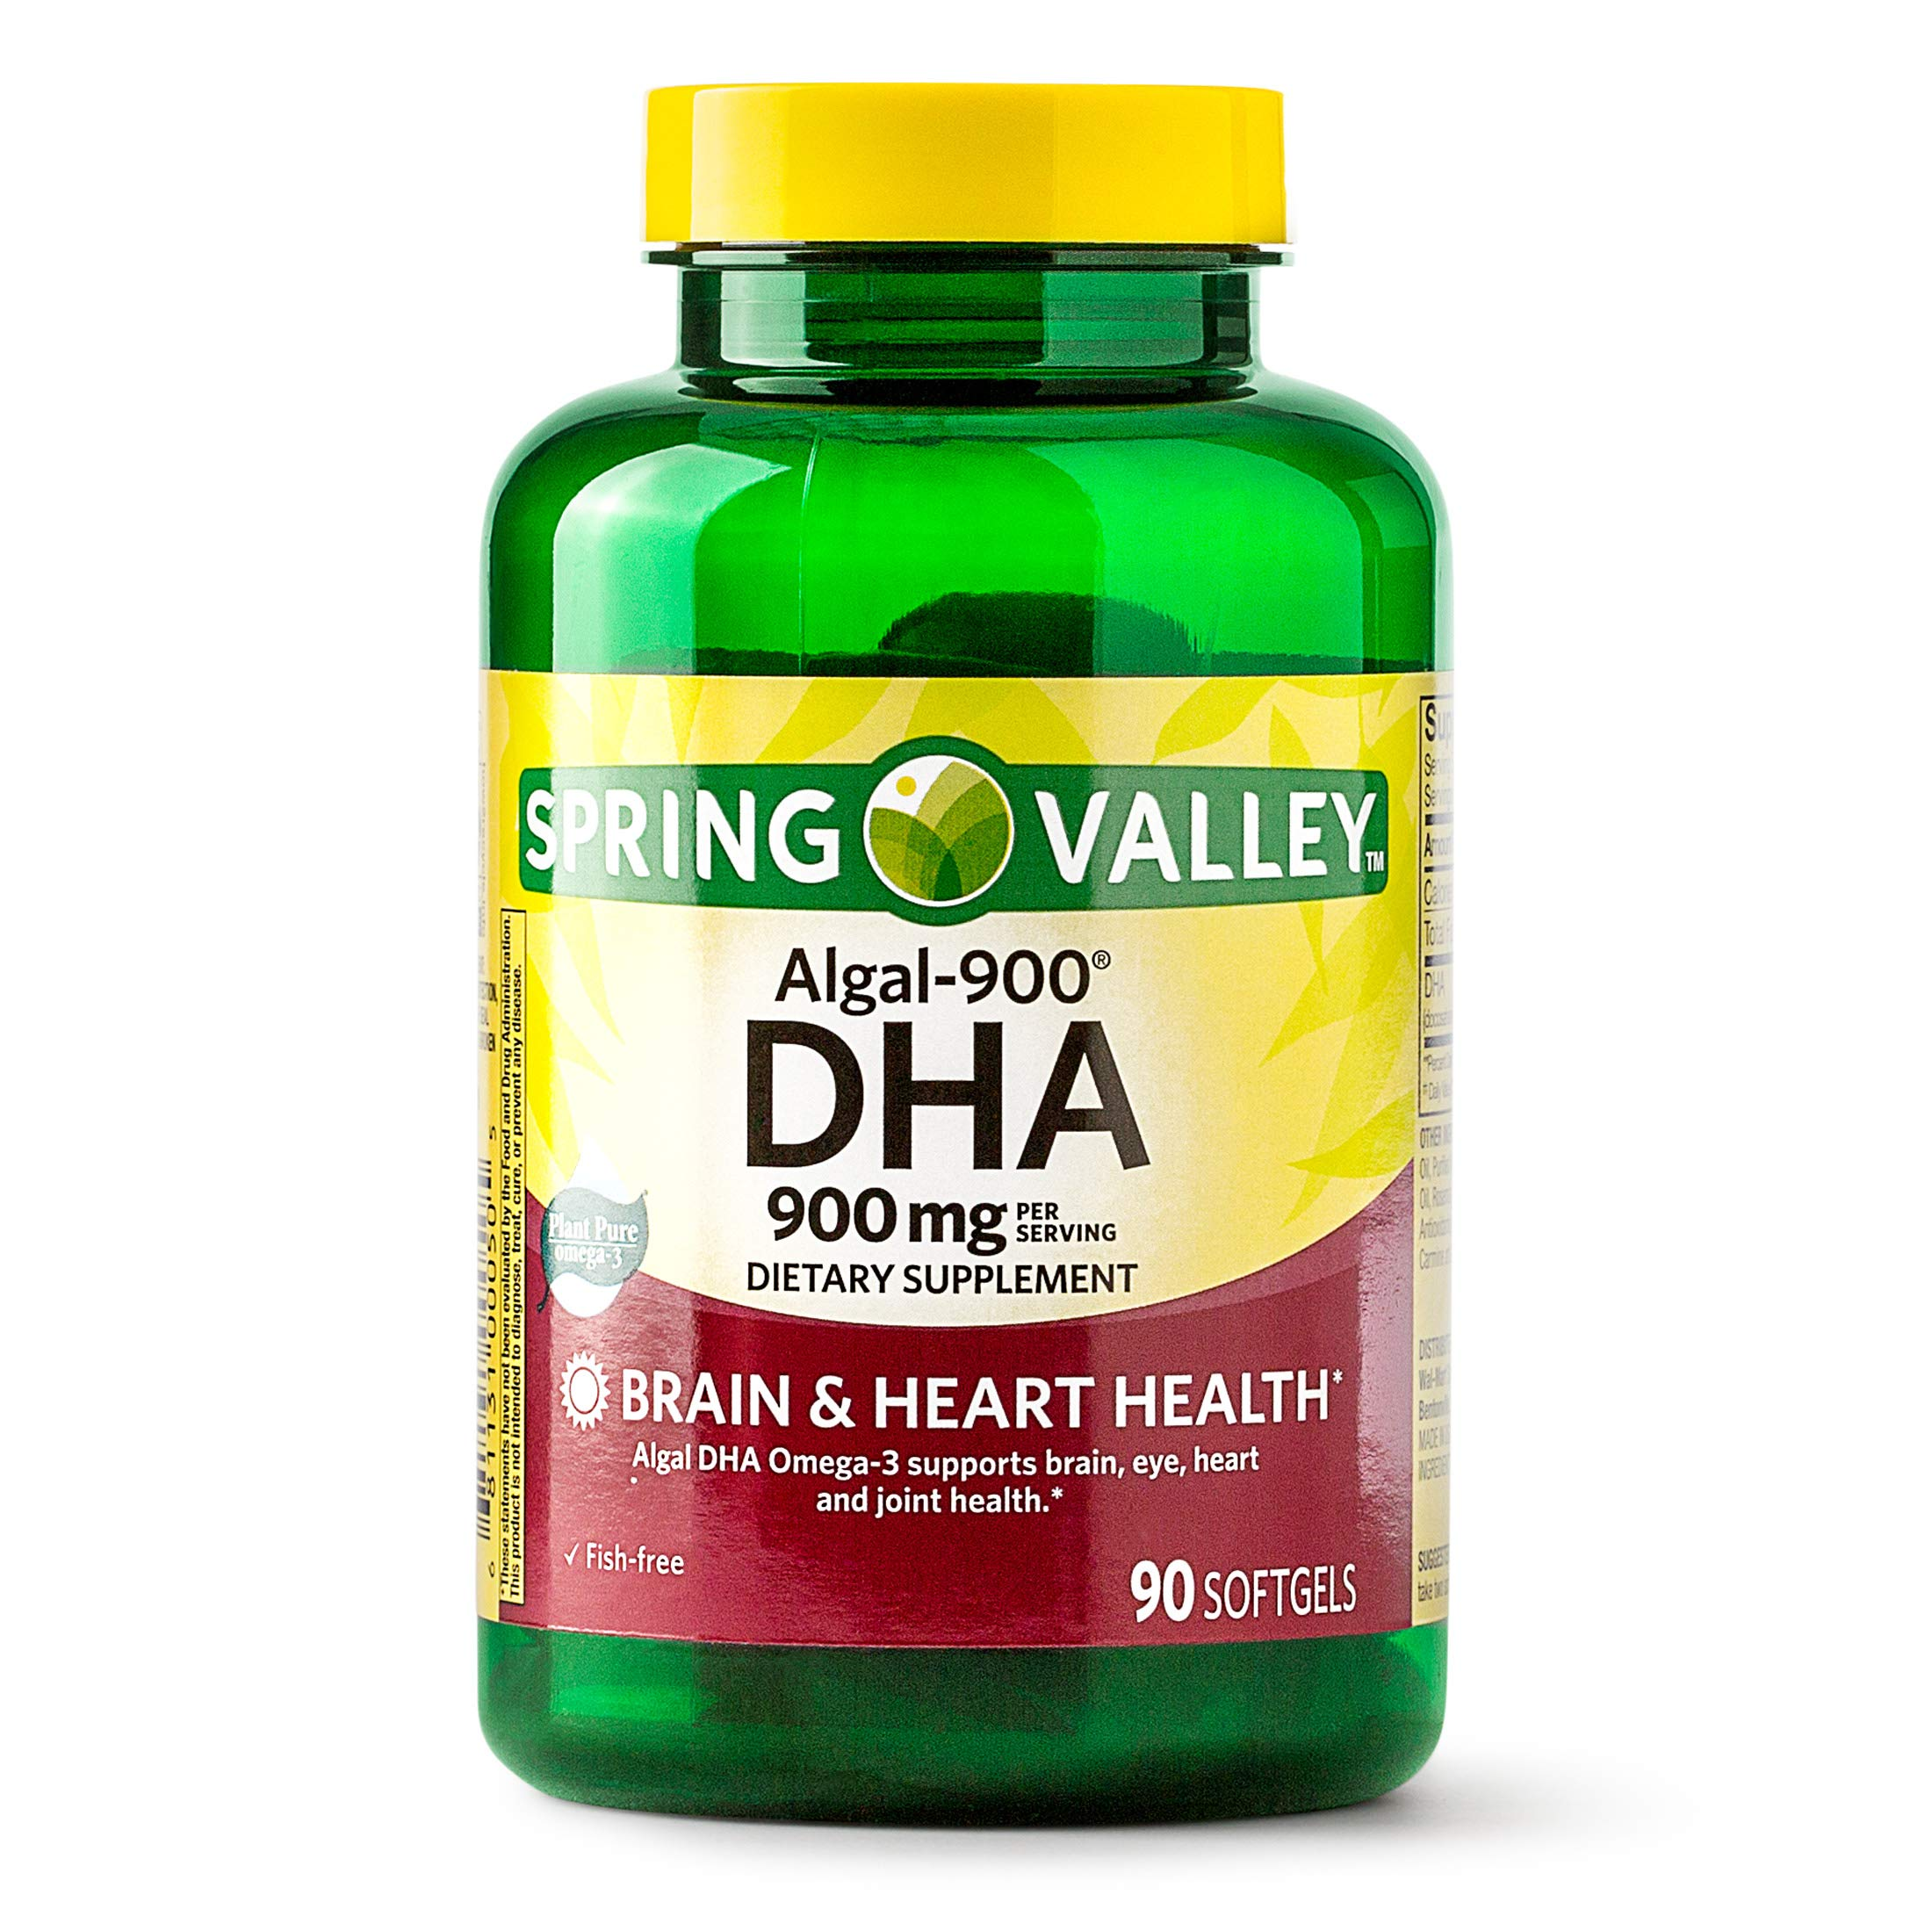 Spring Valley Algal-900 DHA Softgels, 900 mg, 90 Ct by Spring Valley